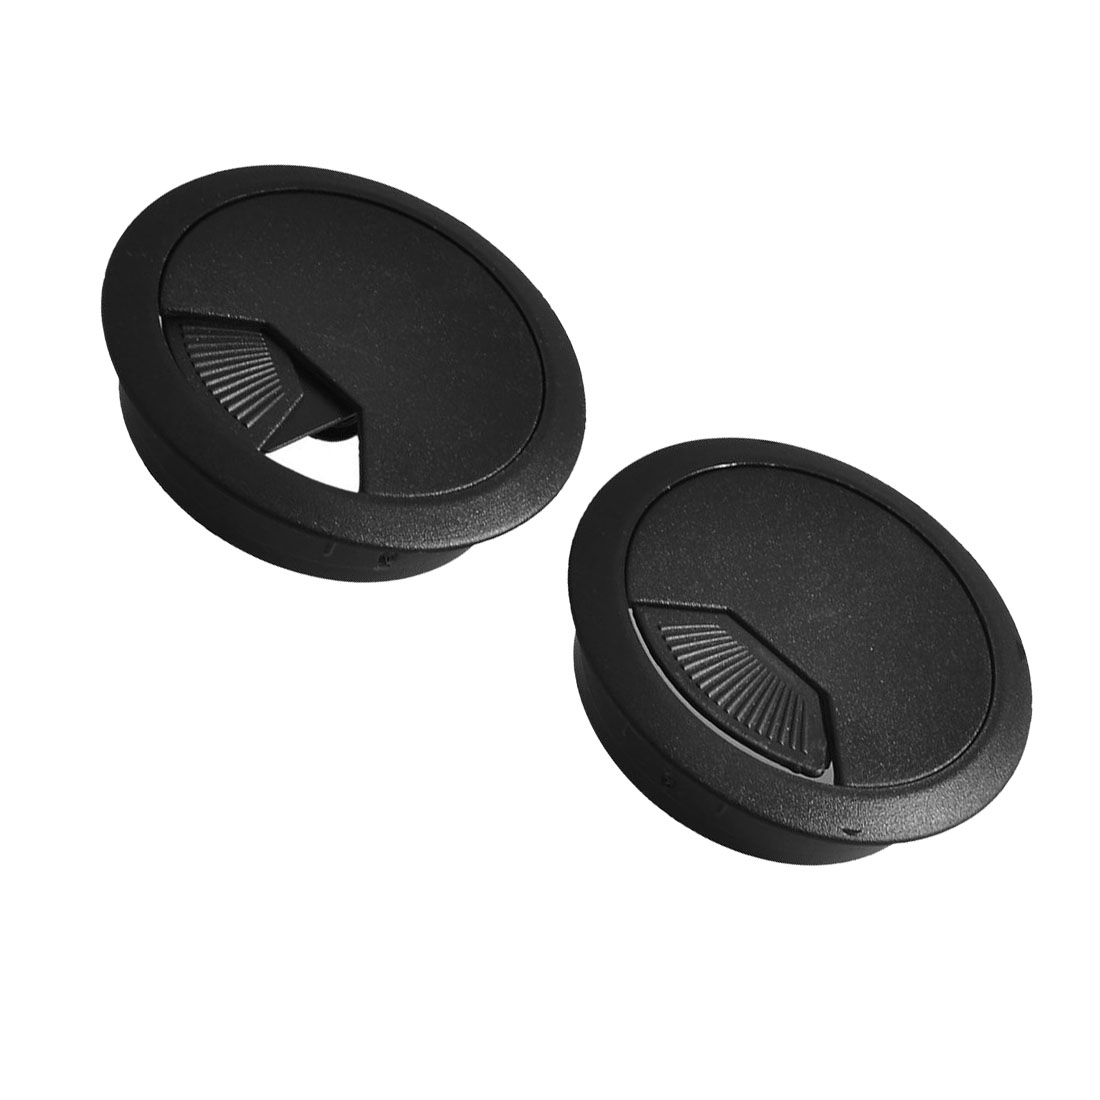 2 Pcs 53mm Diameter Desk Wire Cord Cable Grommets Hole Cover Black cc 923 cable cord holder wire winder black white 6 pcs